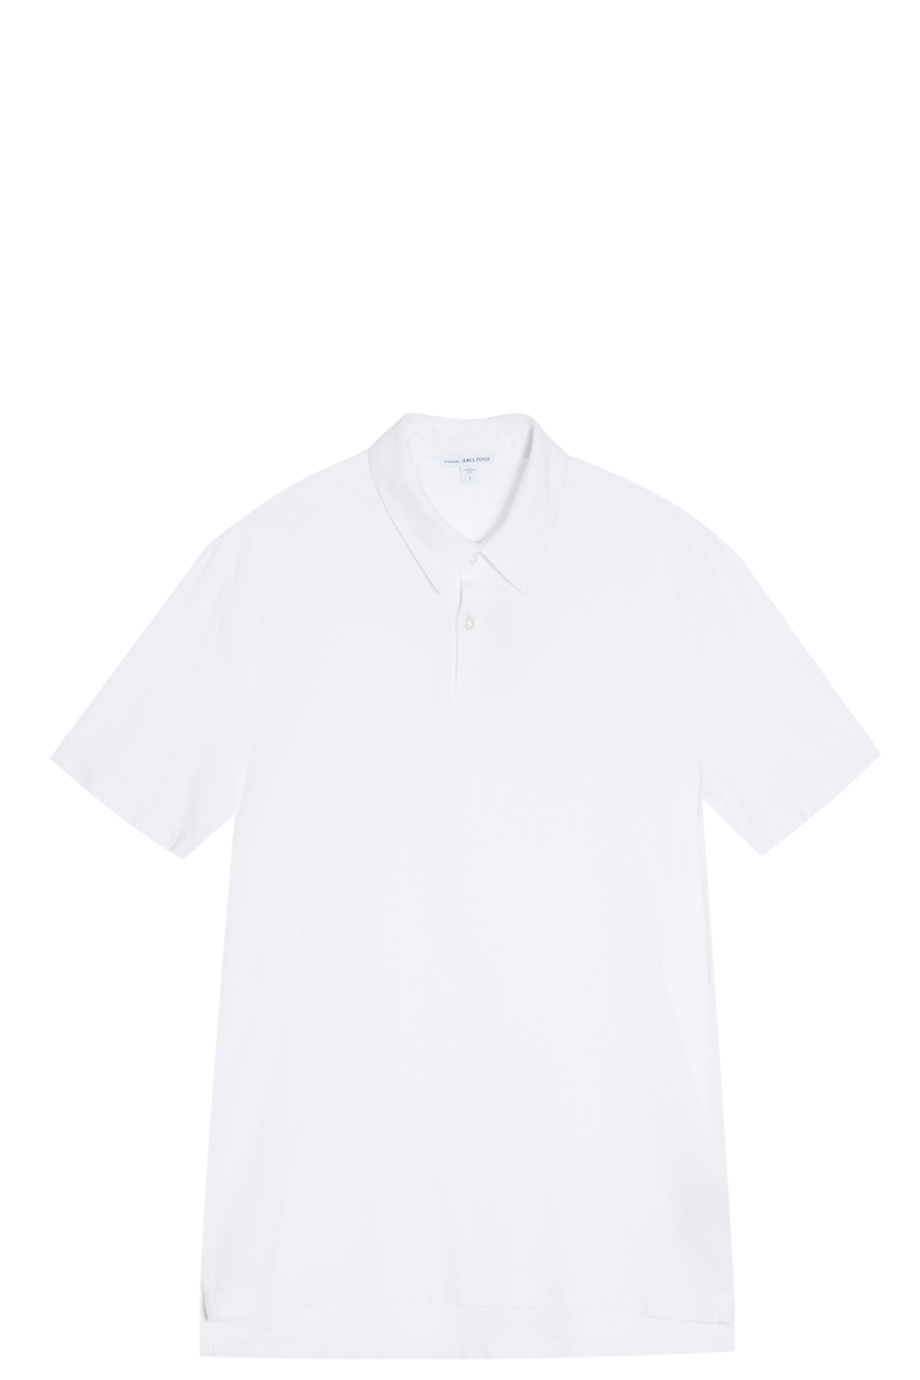 James perse pique polo t shirt in white for men lyst for James perse t shirts sale